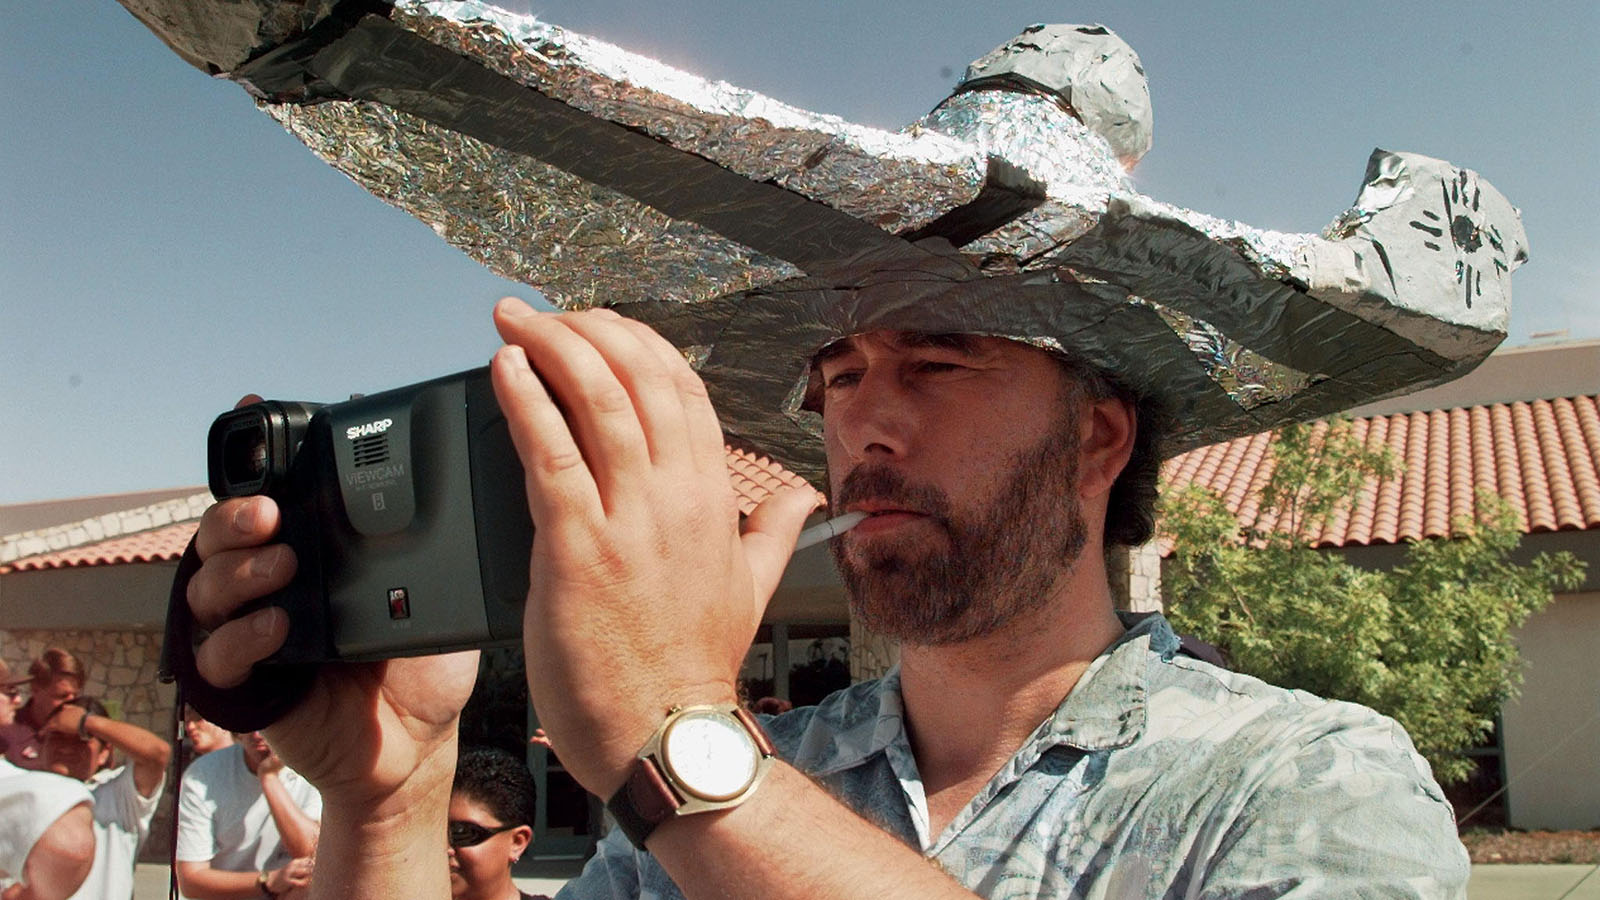 UFO FAN WEARS A TIN FOIL HAT AT ROSWELL UFO CONVENTION